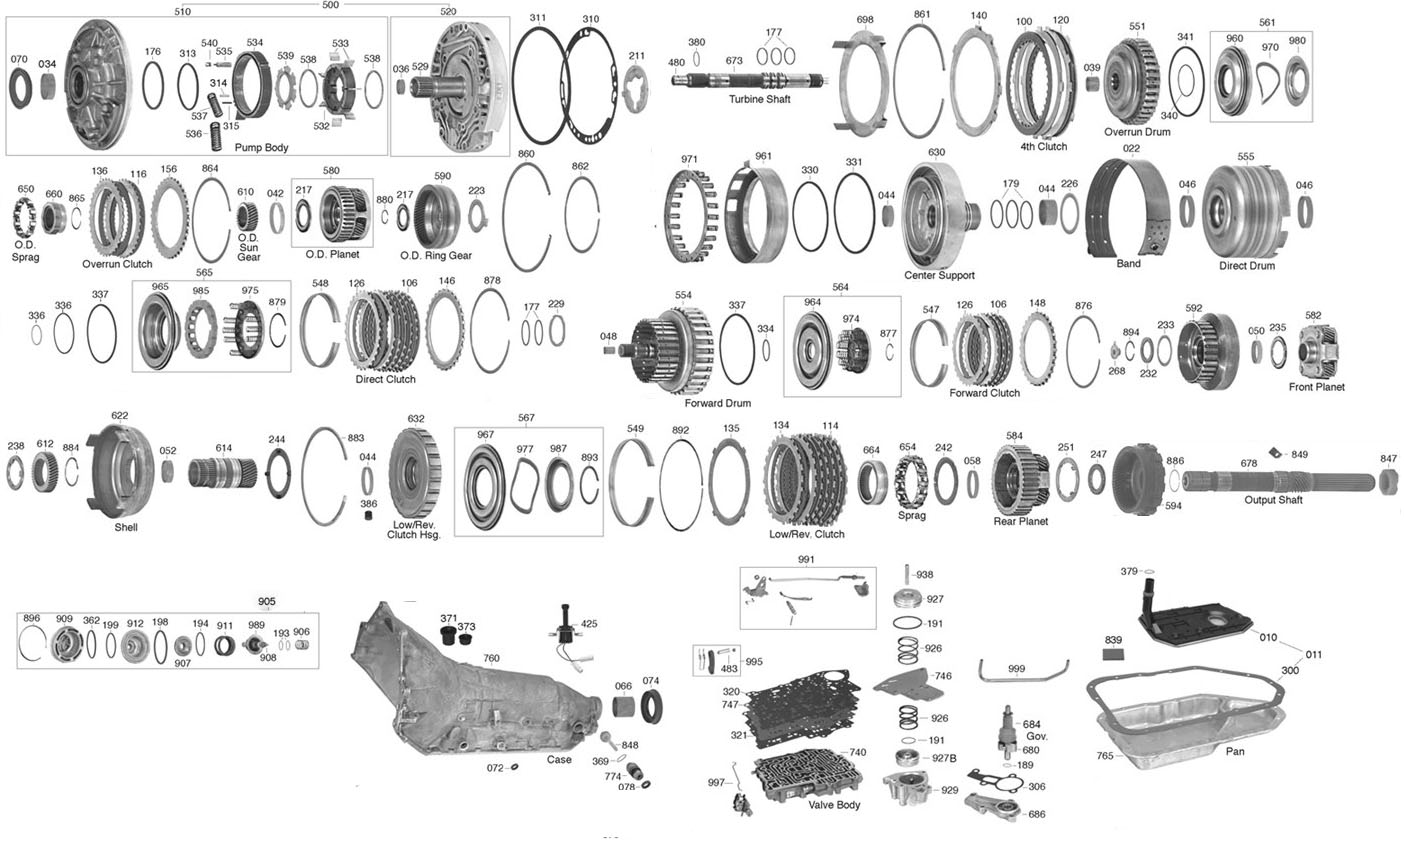 2004r parts diagram pictures to pin on pinterest